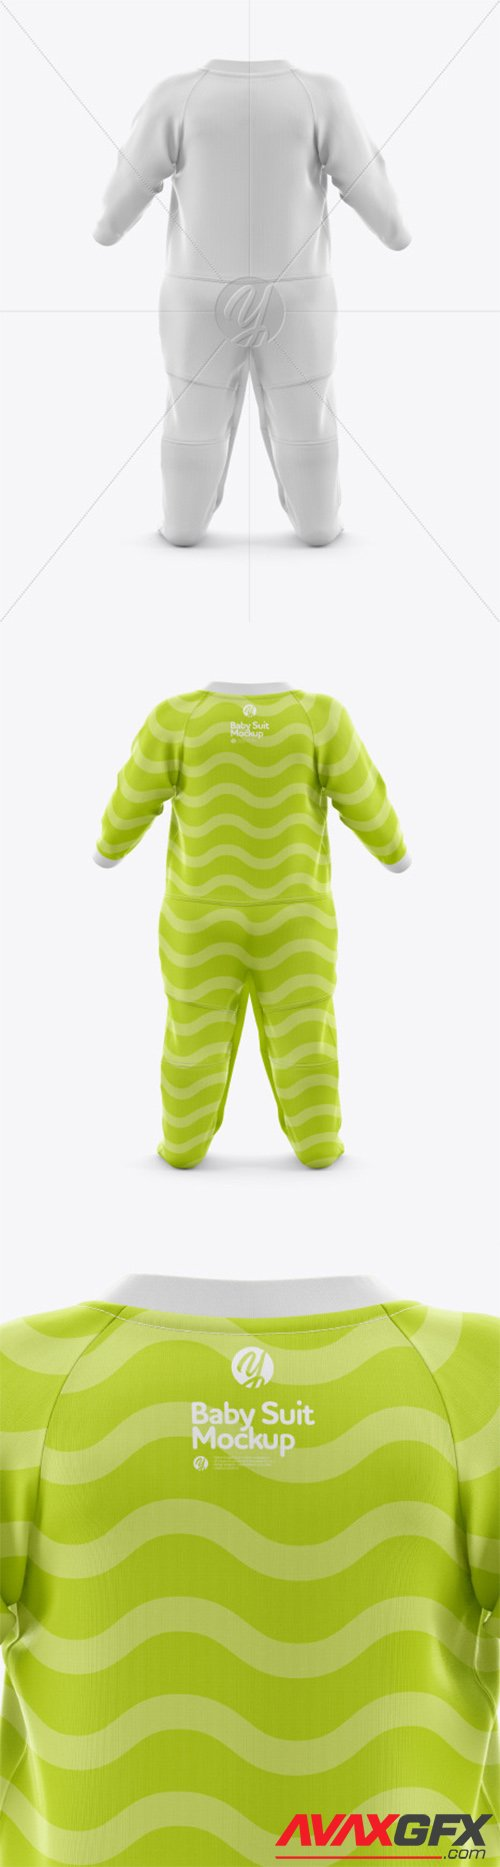 Baby Suit Mockup - Back View 44248